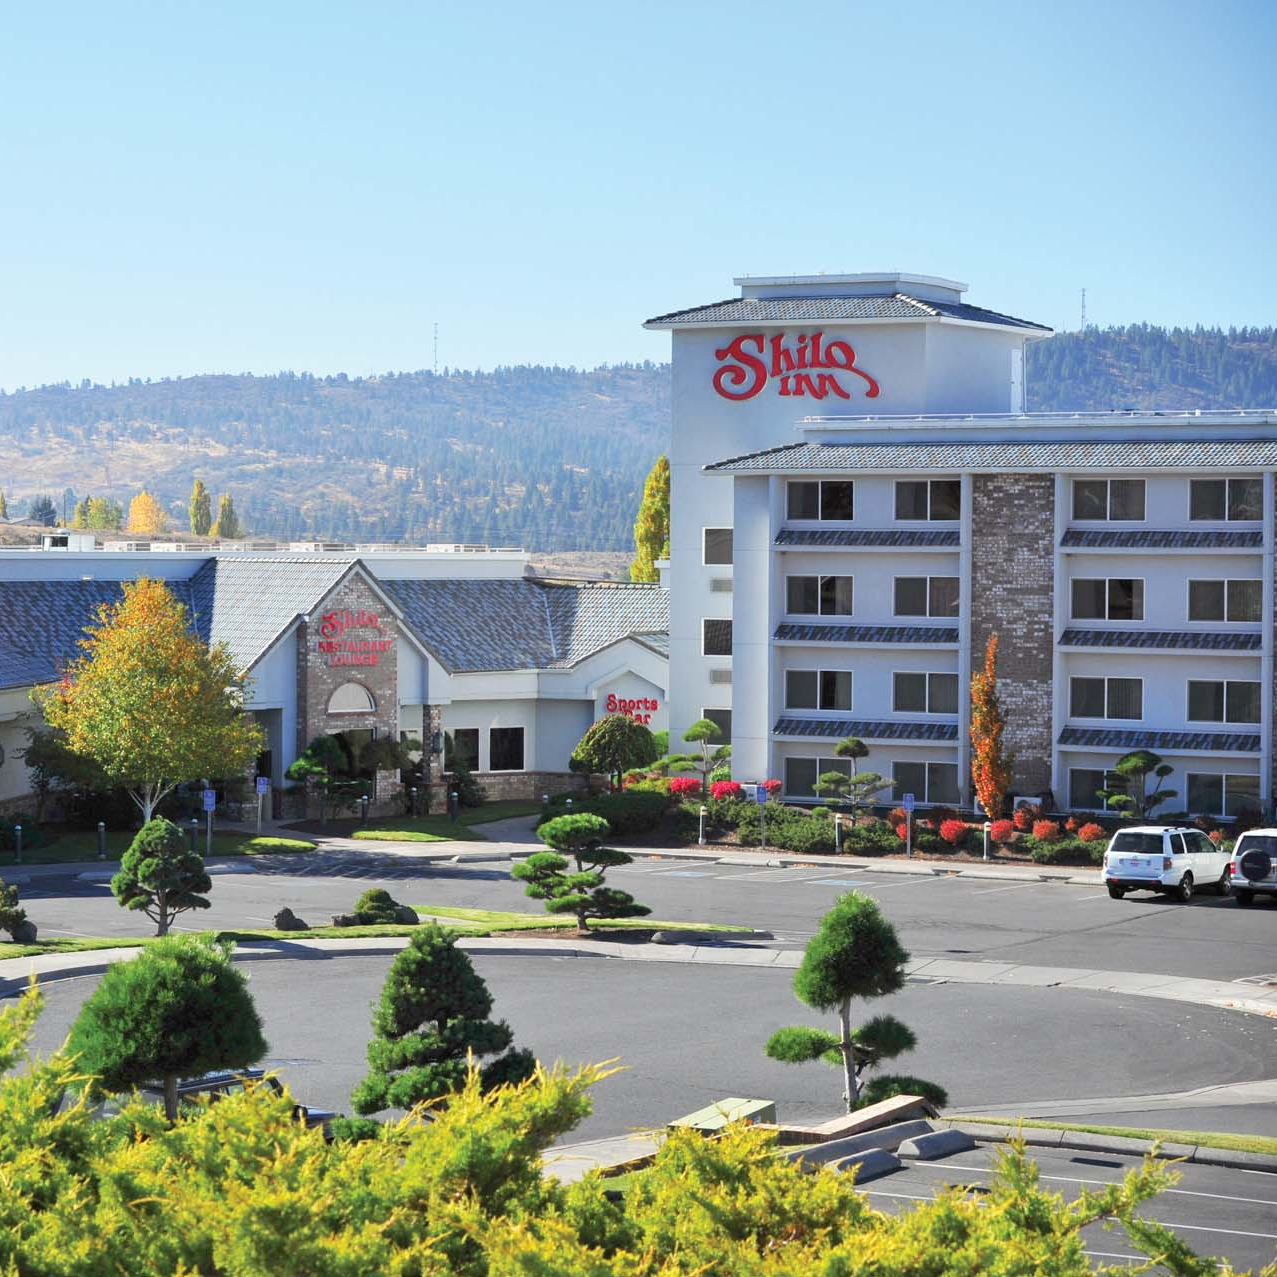 Shilo Inns at Klamath Falls